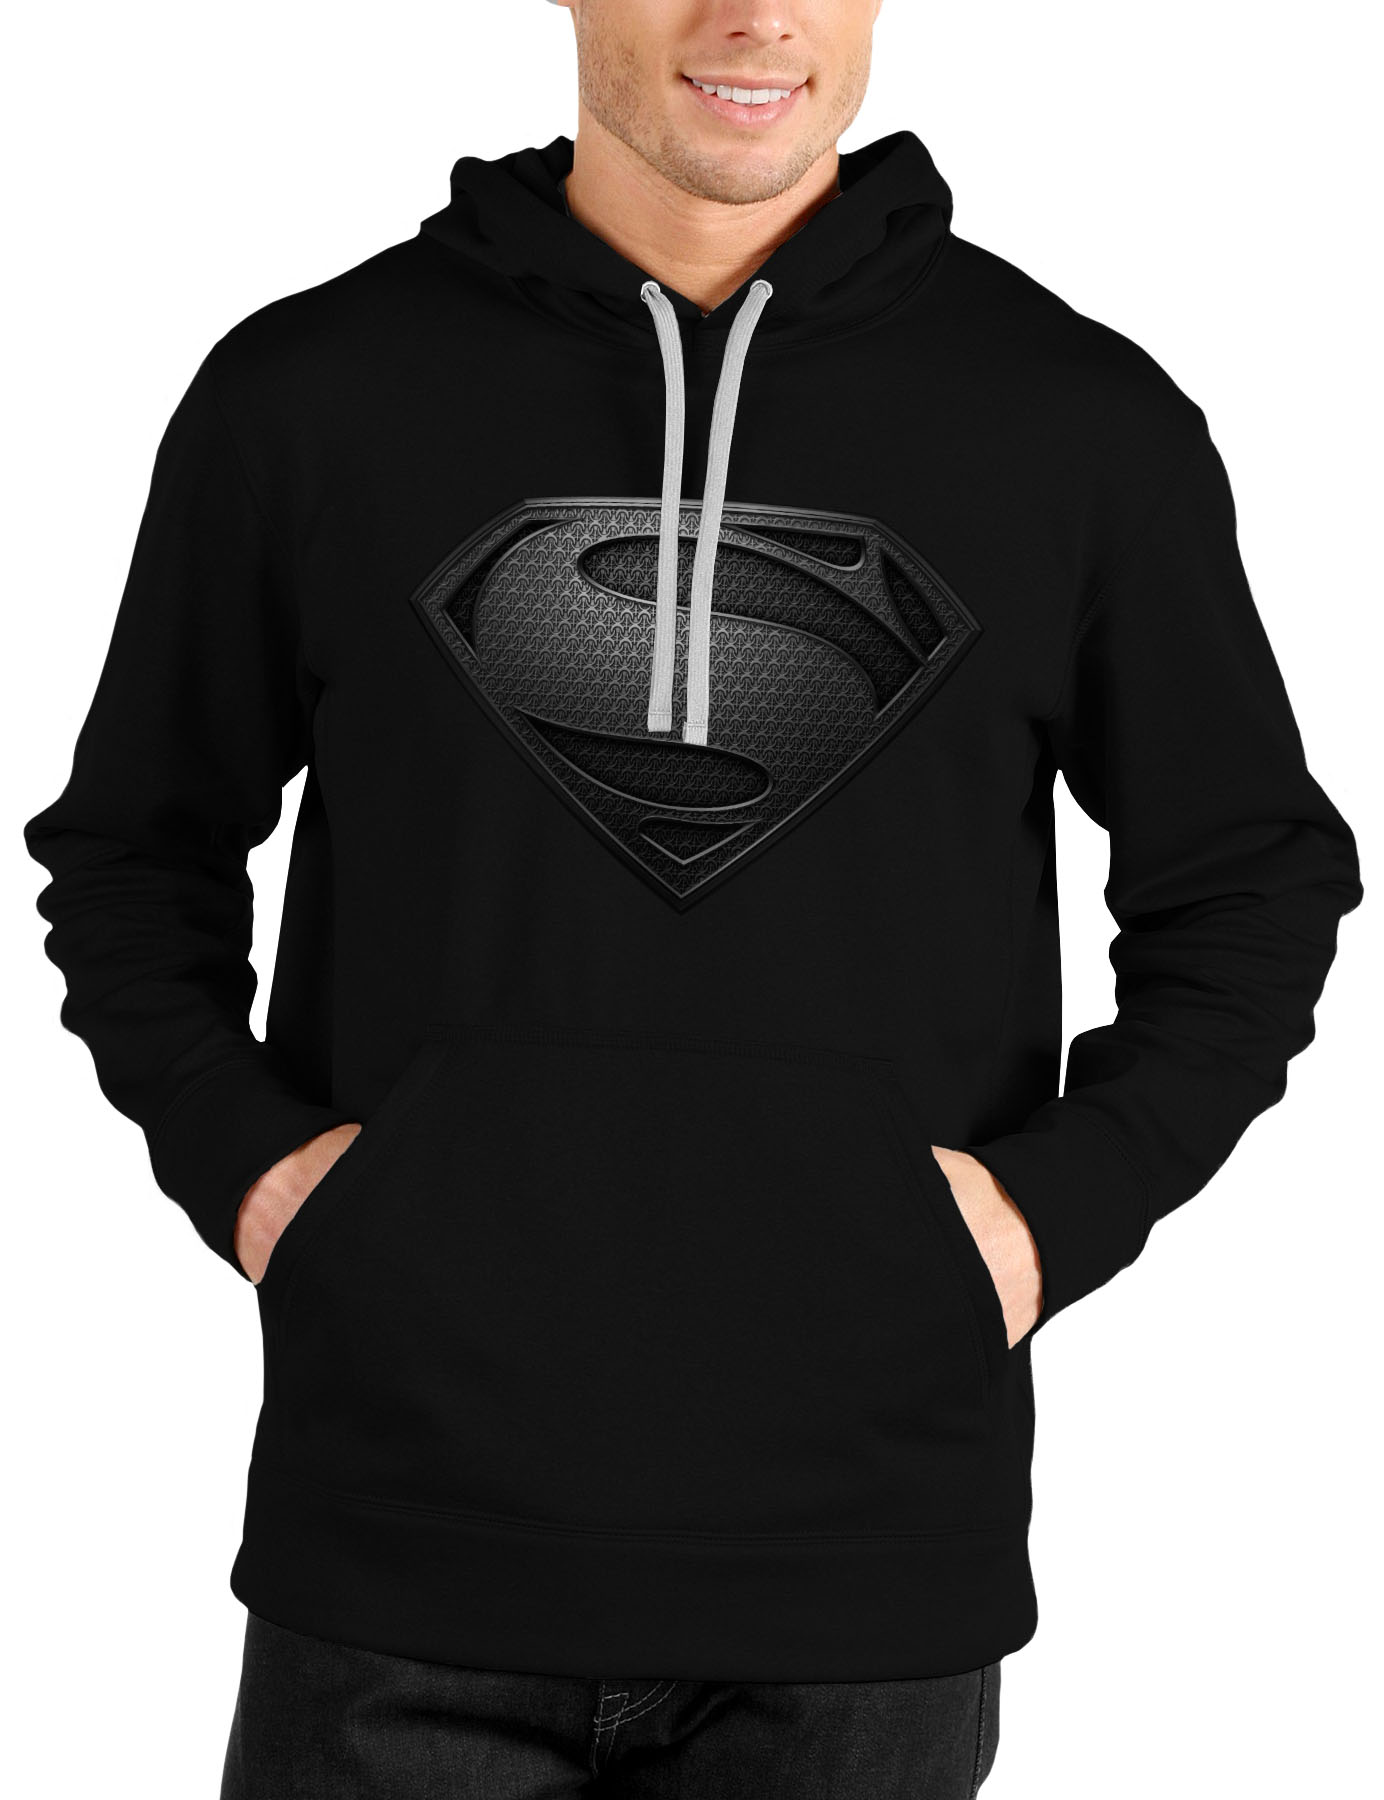 Find great deals on eBay for superman hoodie. Shop with confidence.